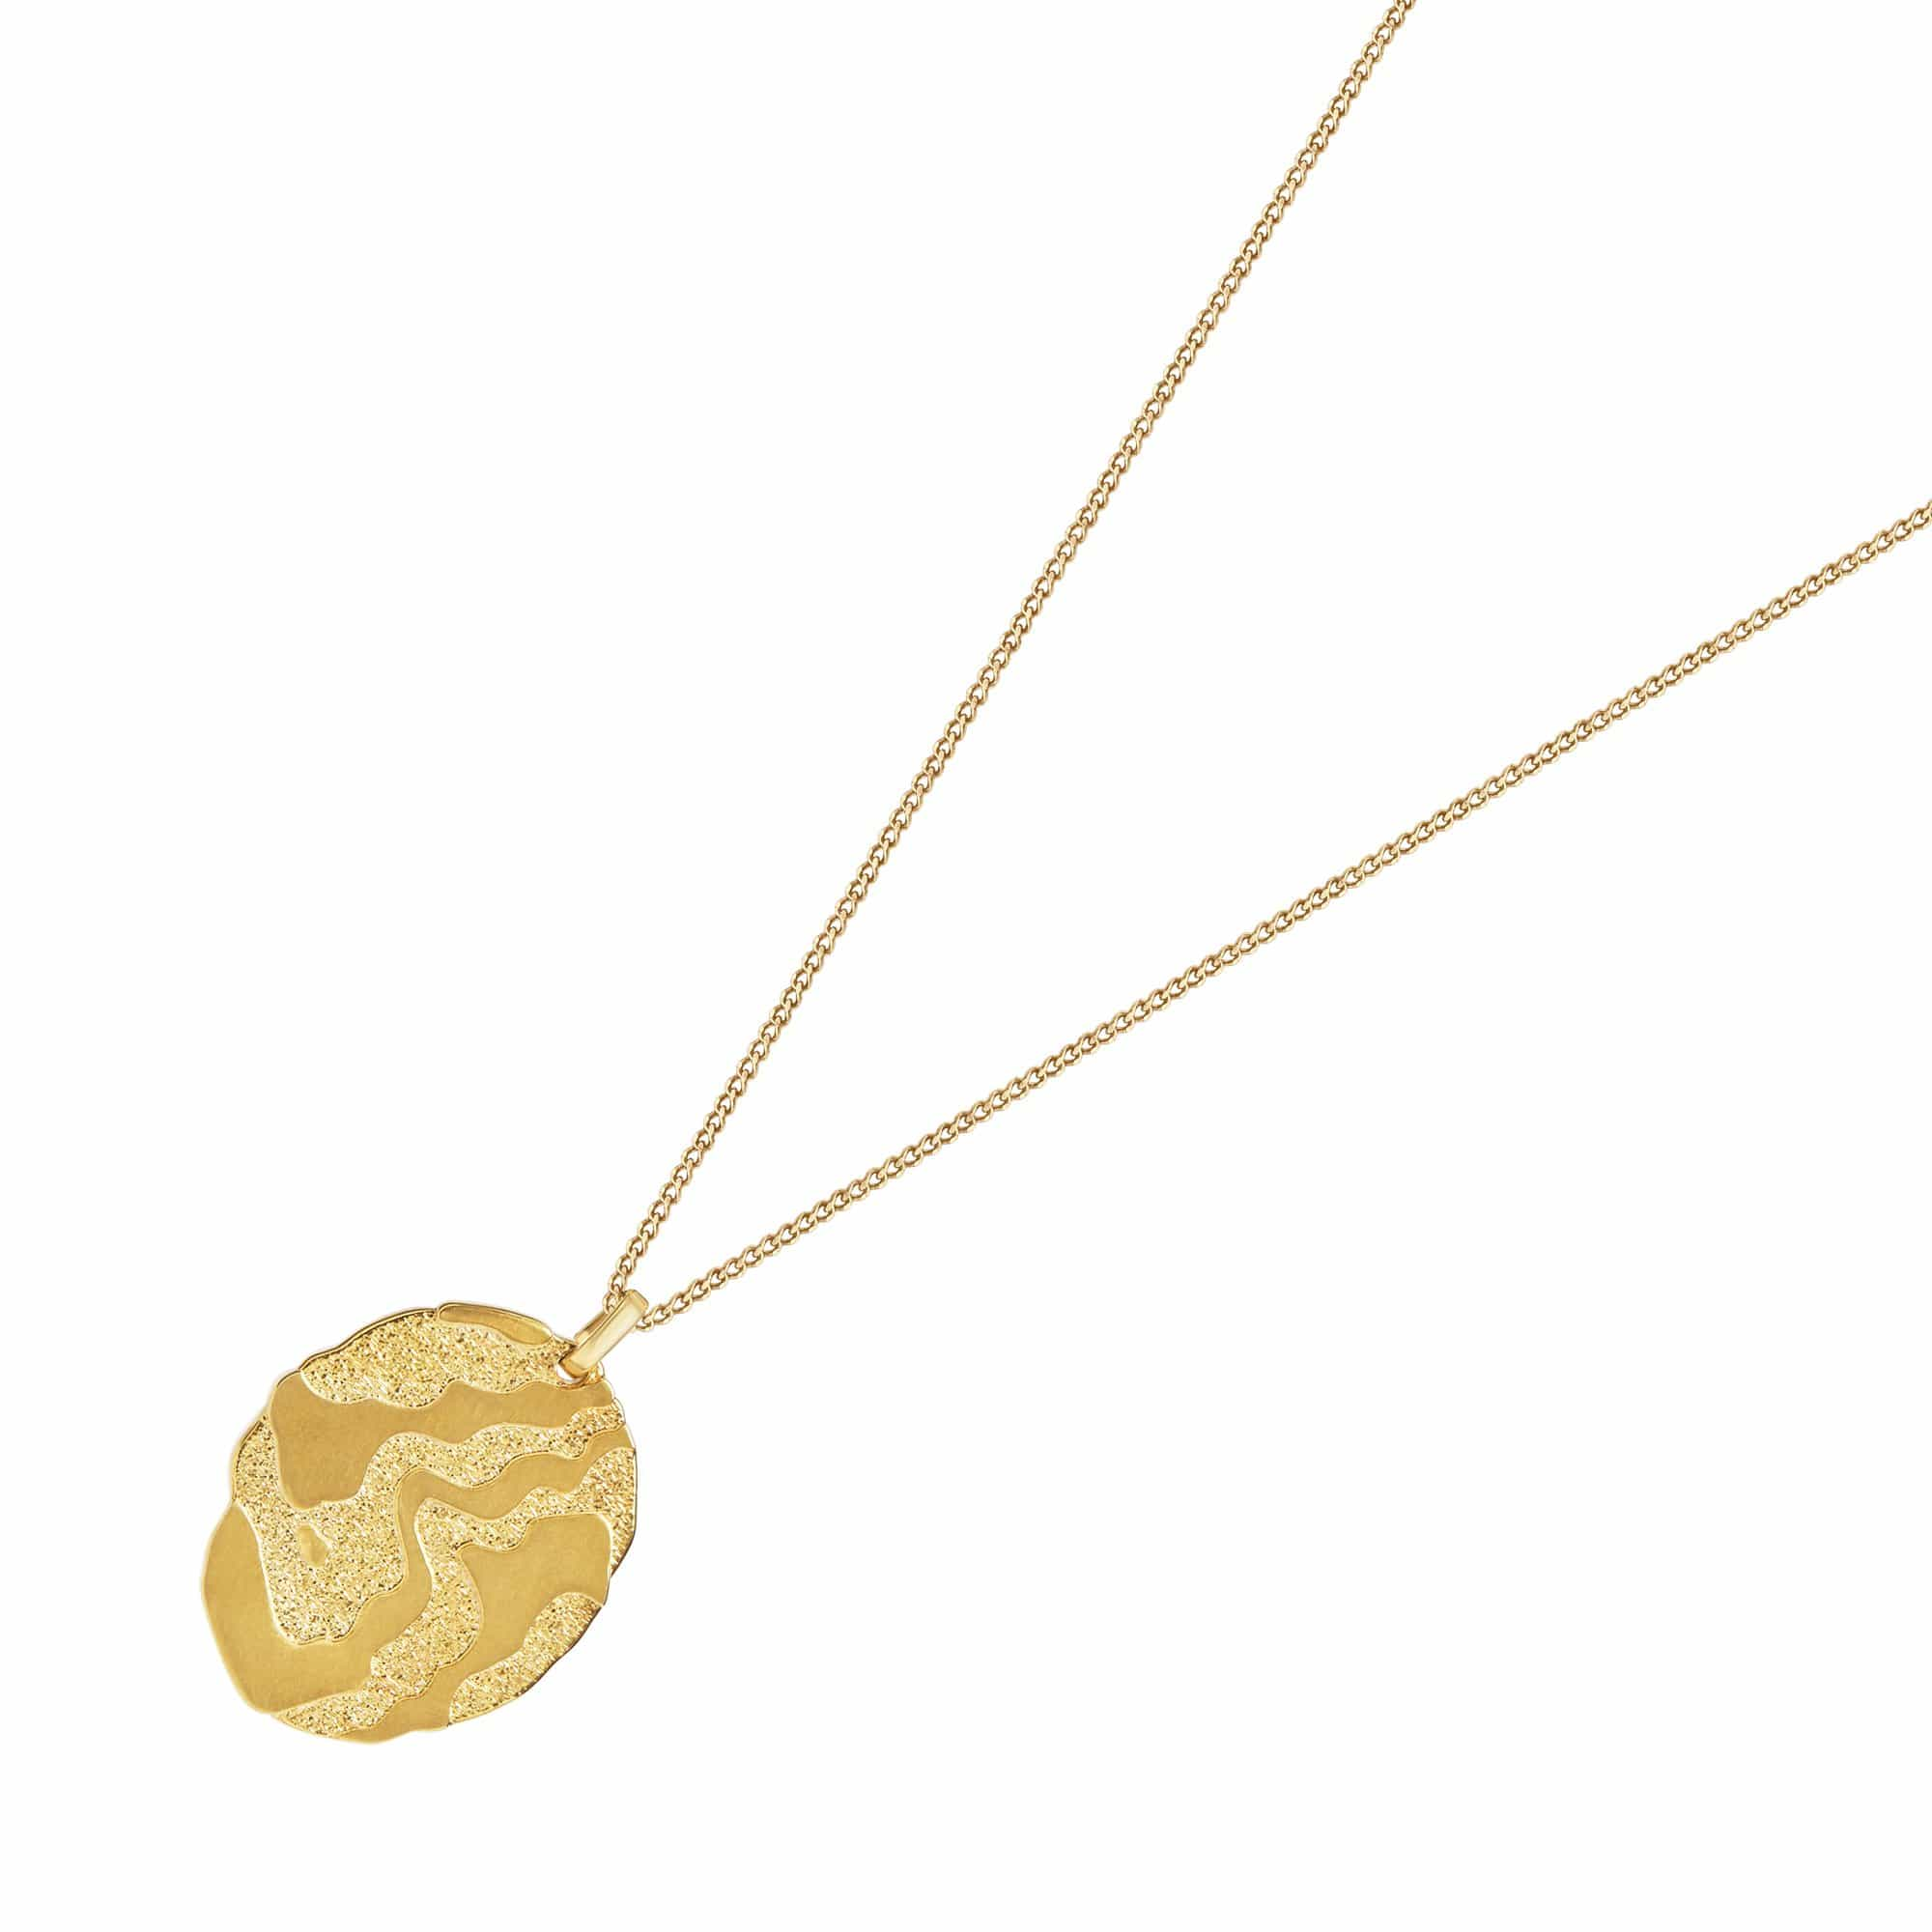 Bosphorus Gold Plated Medallion Necklace